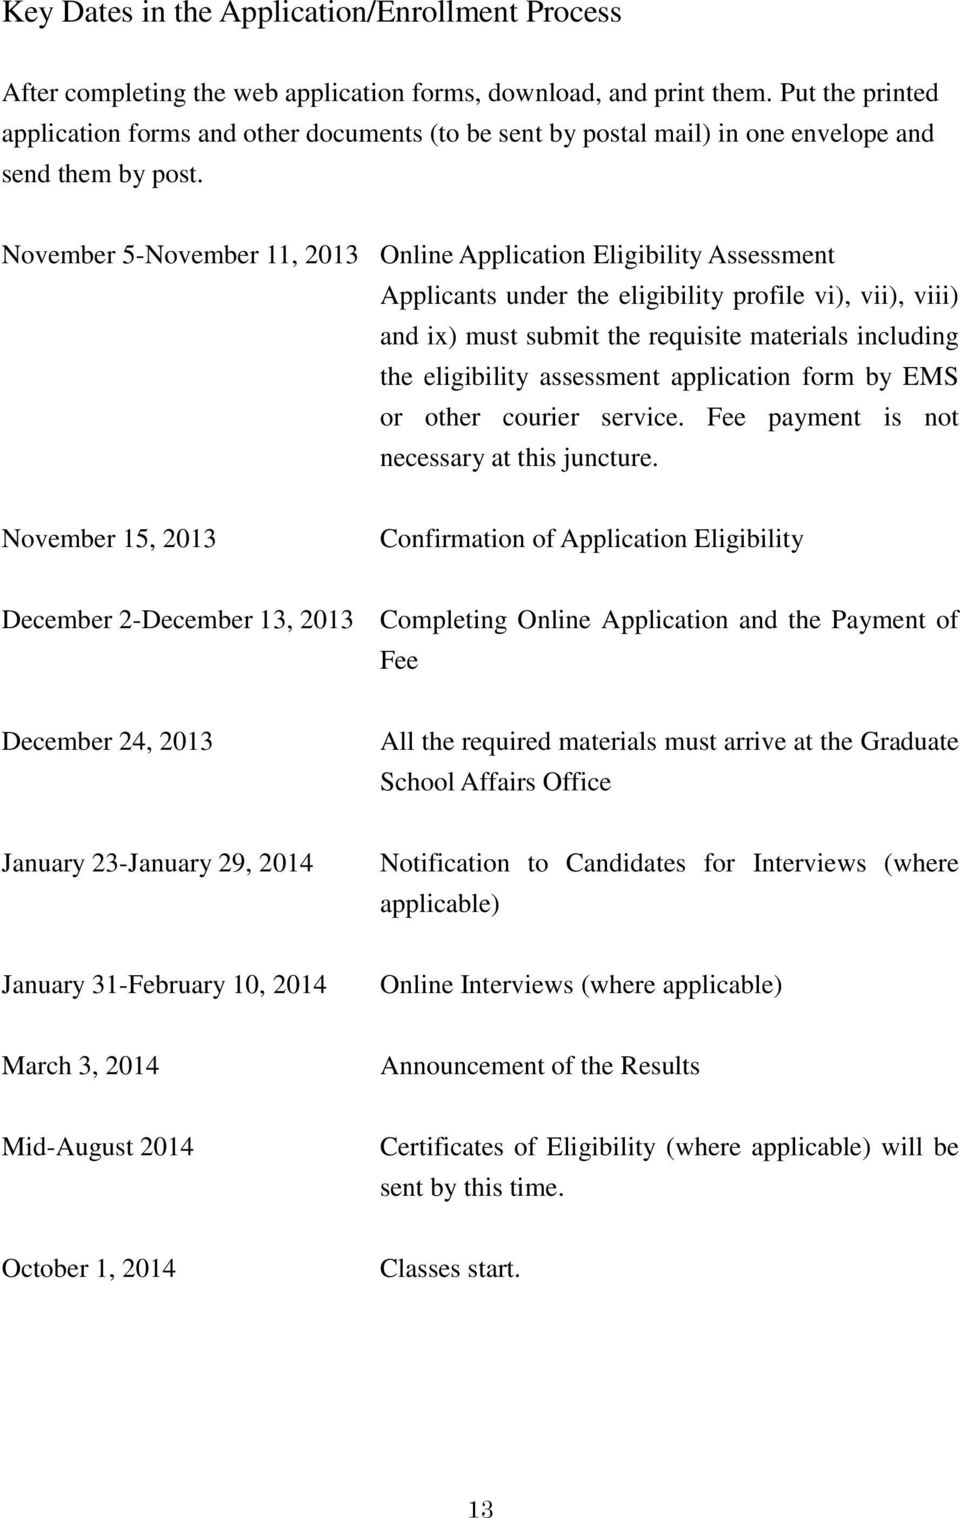 November 5-November 11, 2013 Online Application Eligibility Assessment Applicants under the eligibility profile vi), vii), viii) and ix) must submit the requisite materials including the eligibility